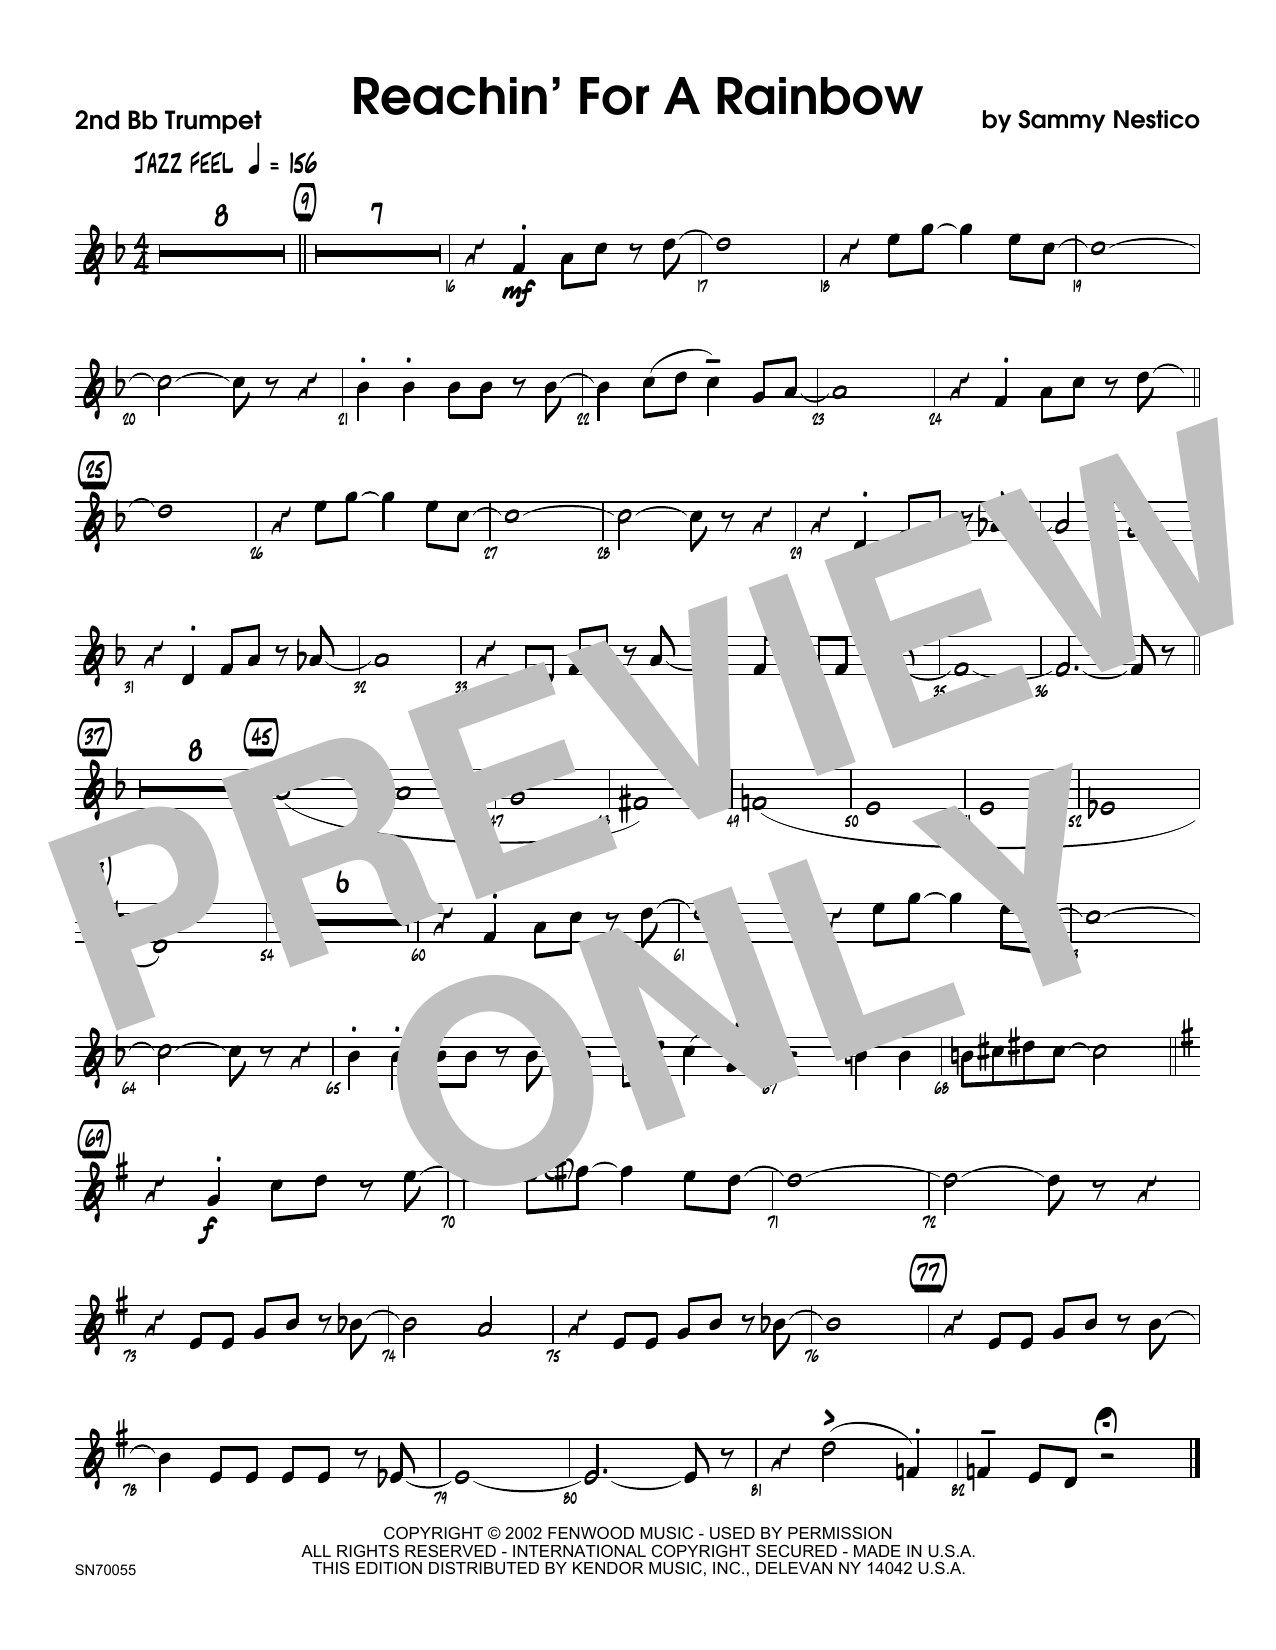 Reachin' For A Rainbow - 2nd Bb Trumpet Sheet Music